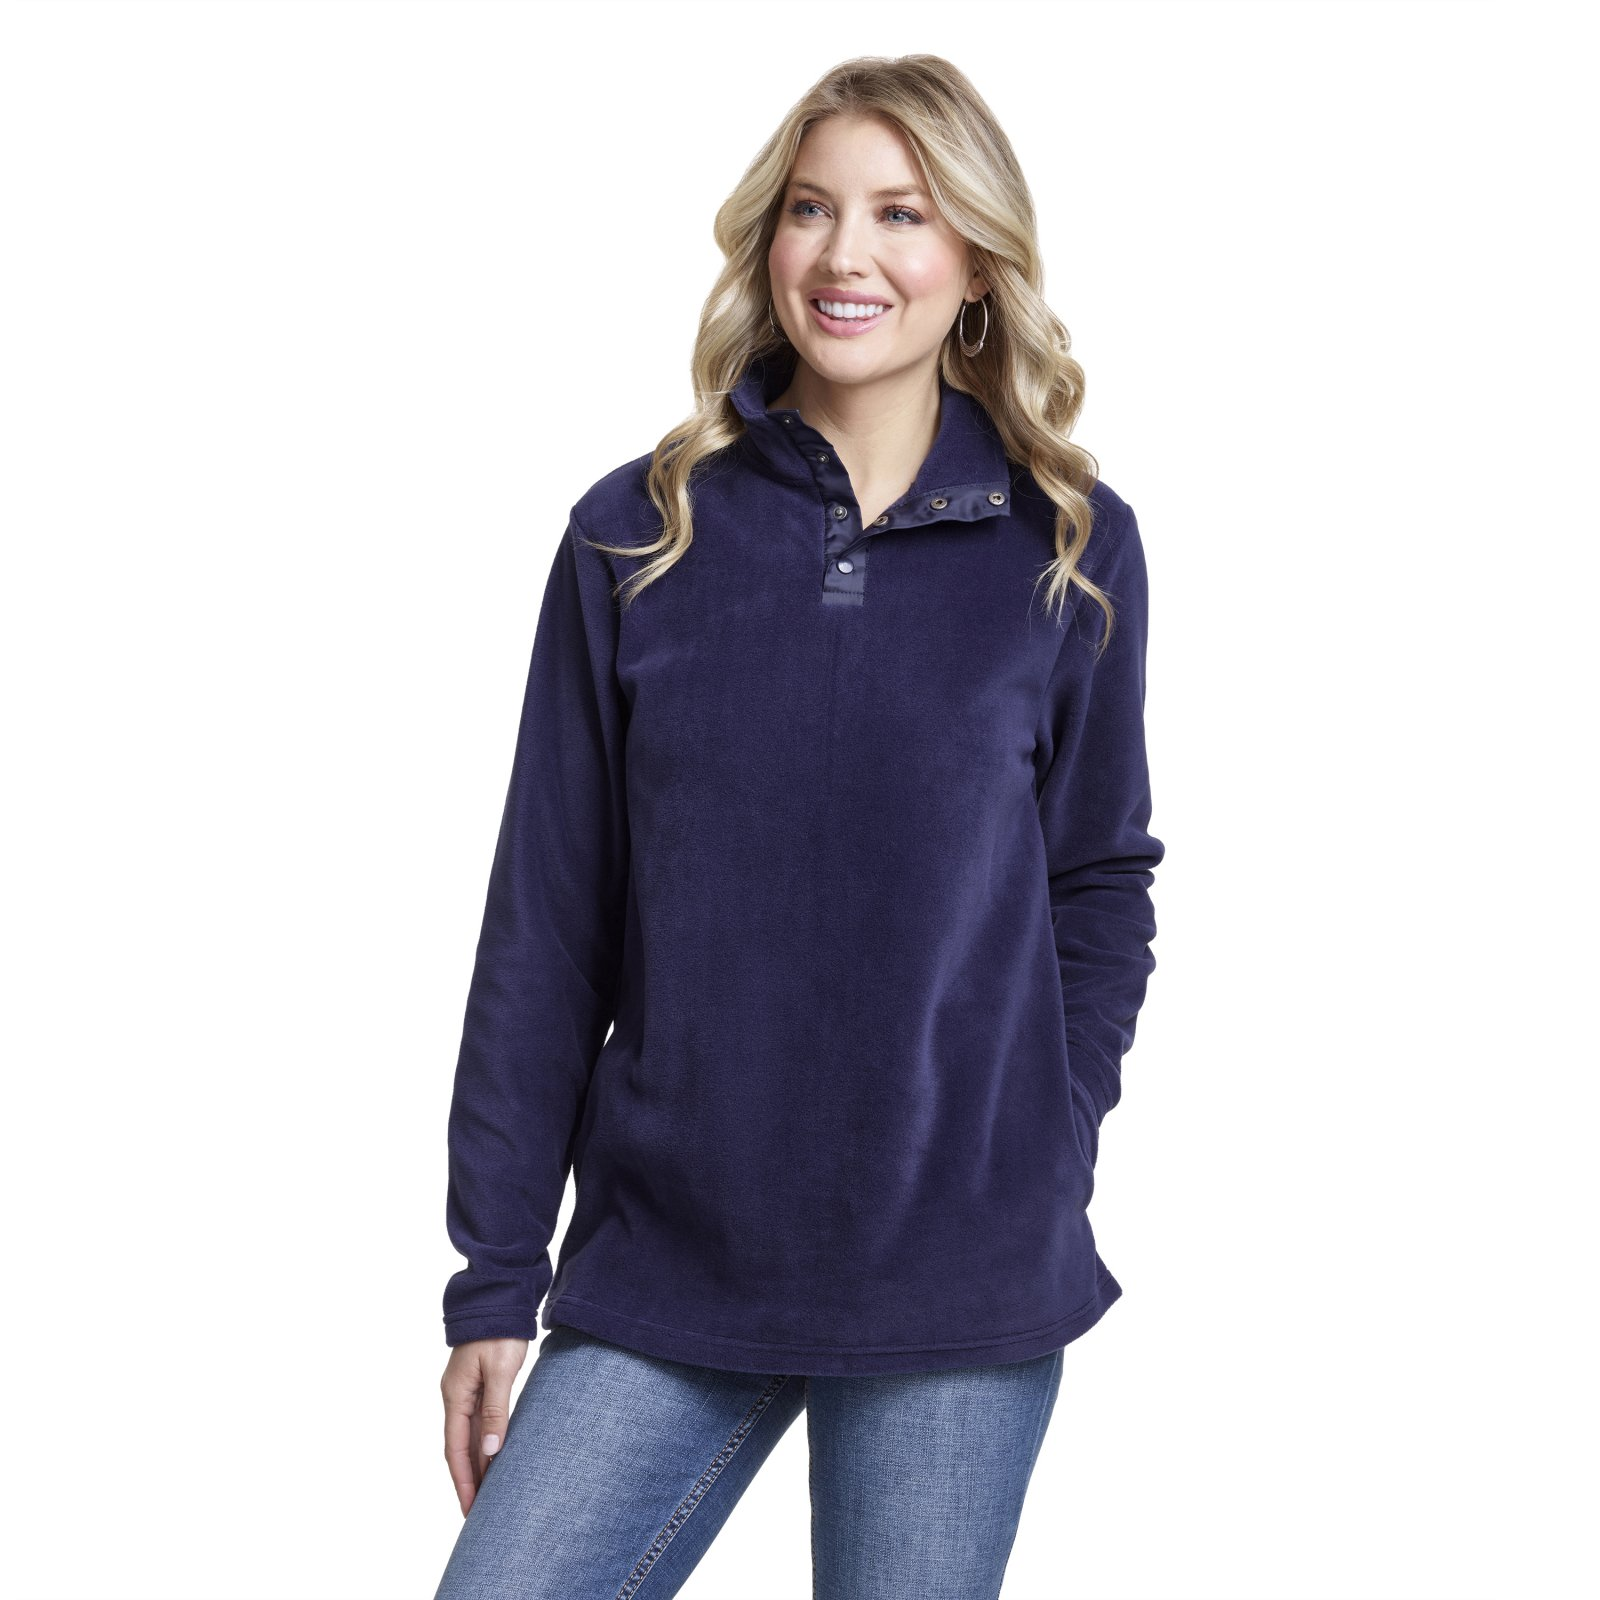 Pullover Polar Fleece Top from Wrangler